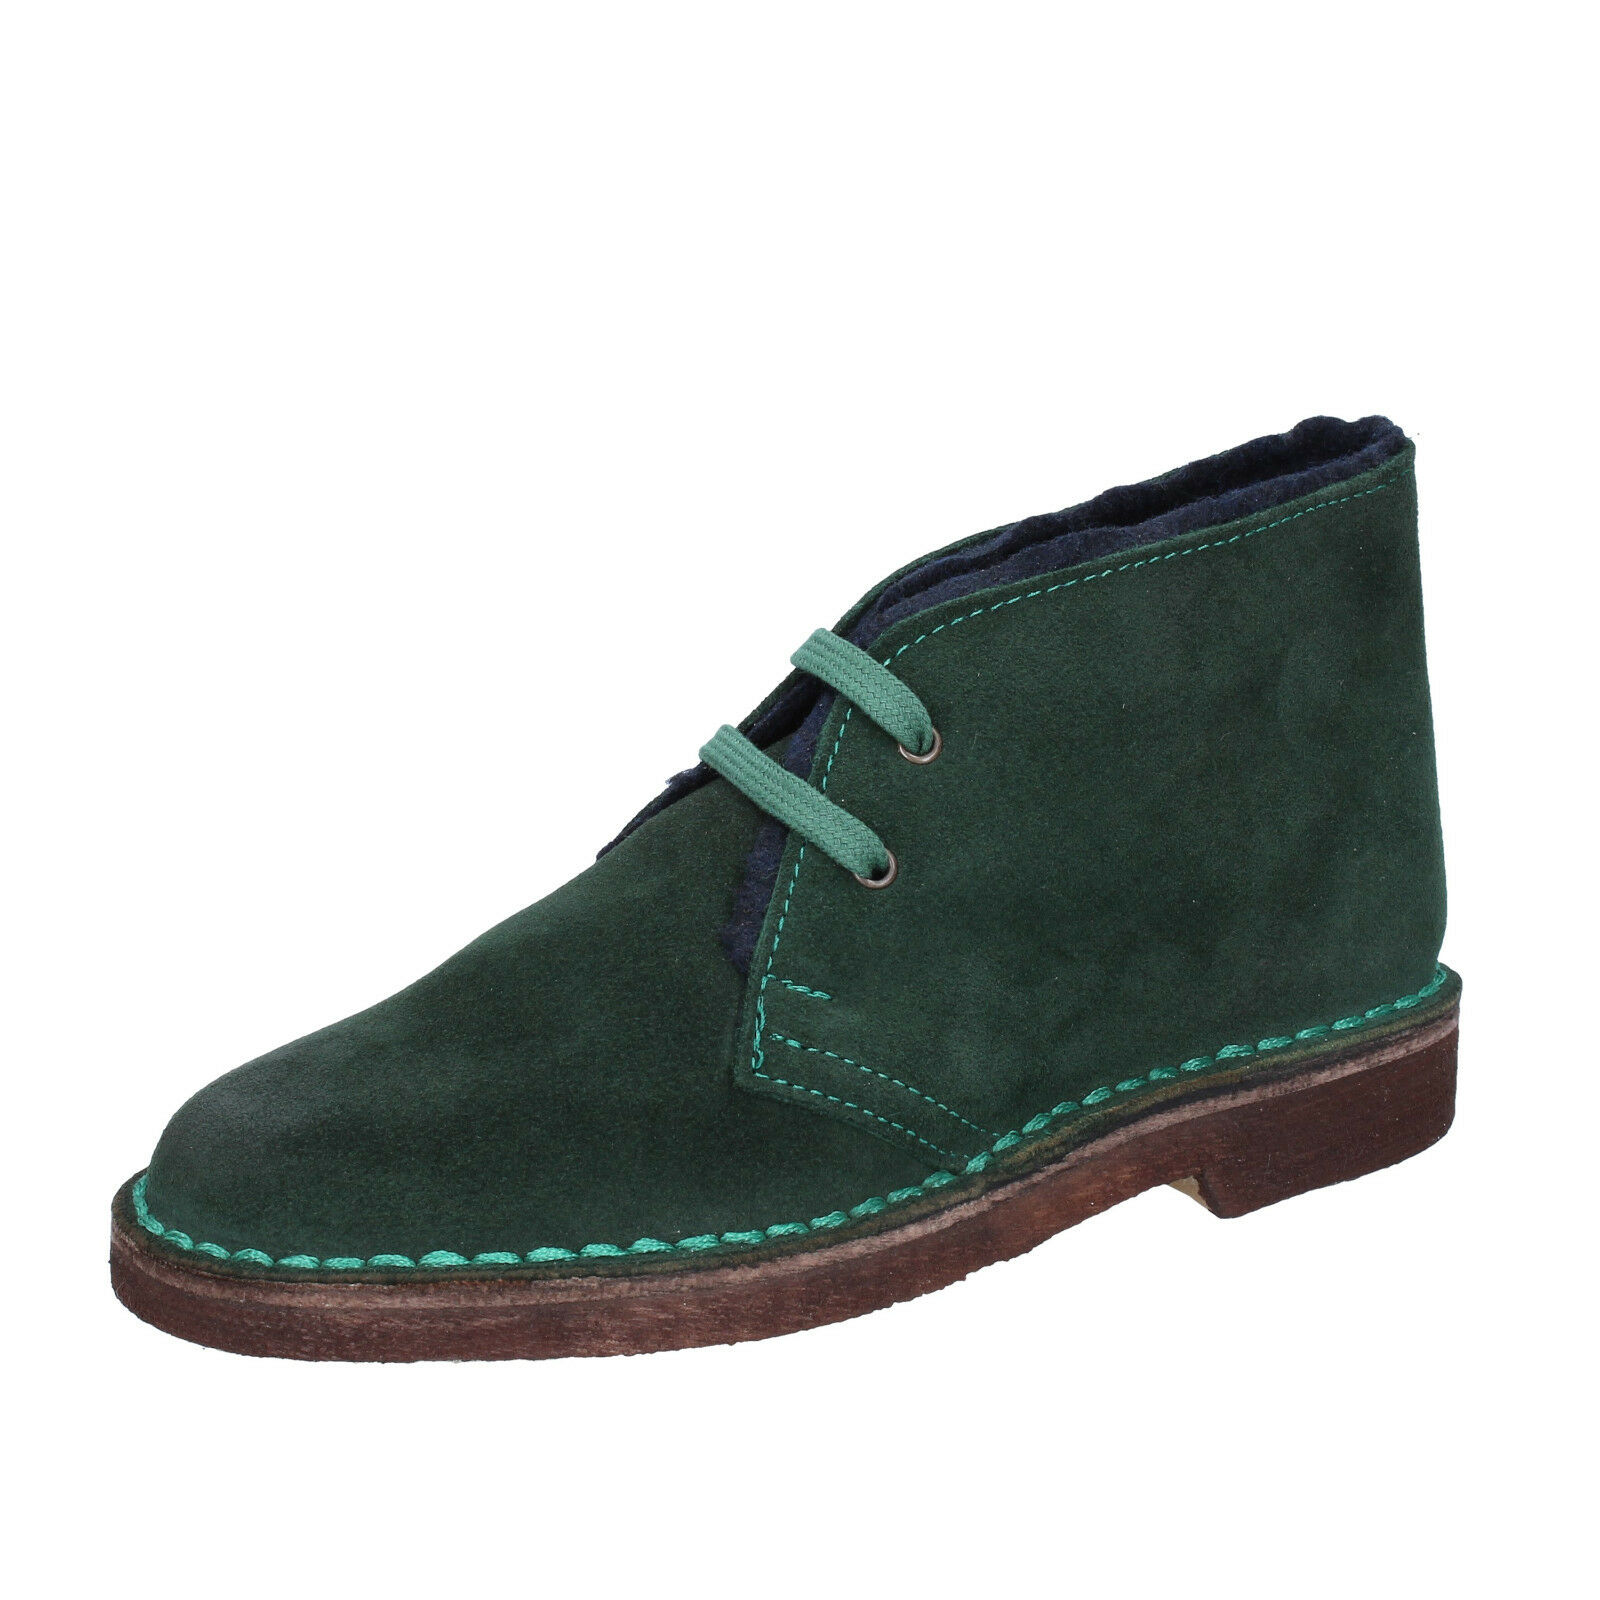 Womens shoes KEPS BY CORAF 2 () desert boots green suede BX675-35